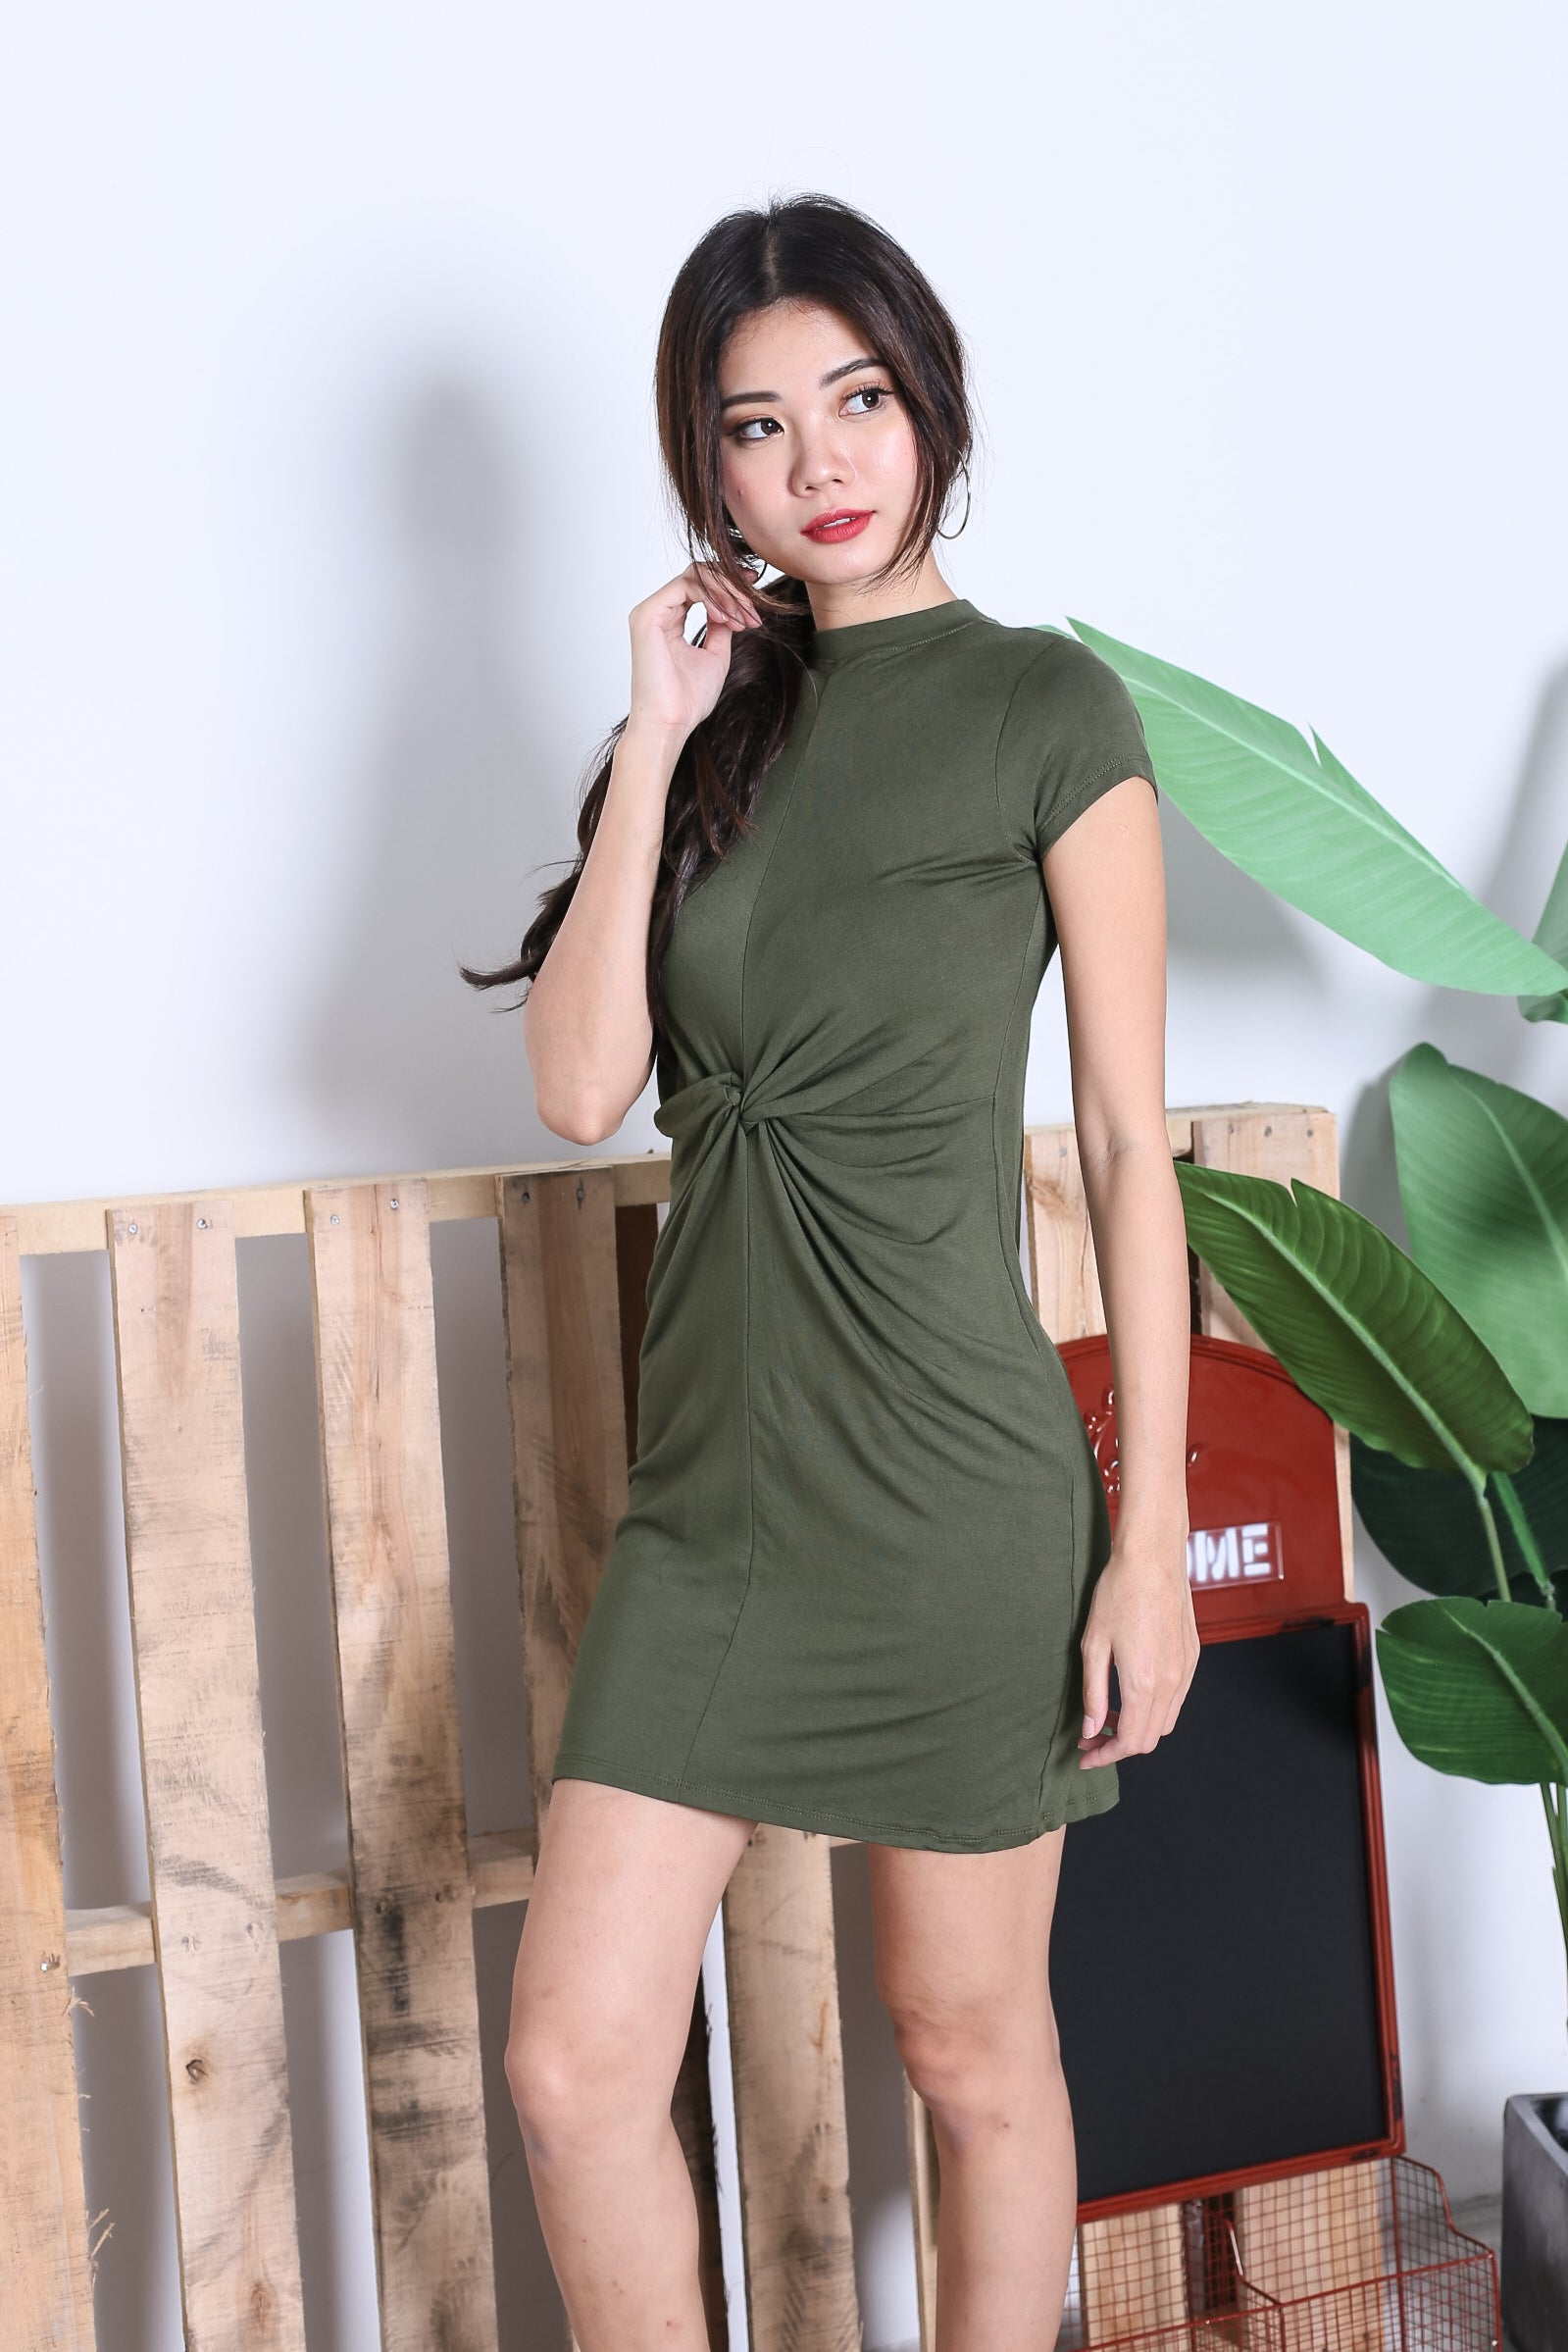 BASIC HIGH NECK KNOTTED TEE DRESS IN ARMY GREEN